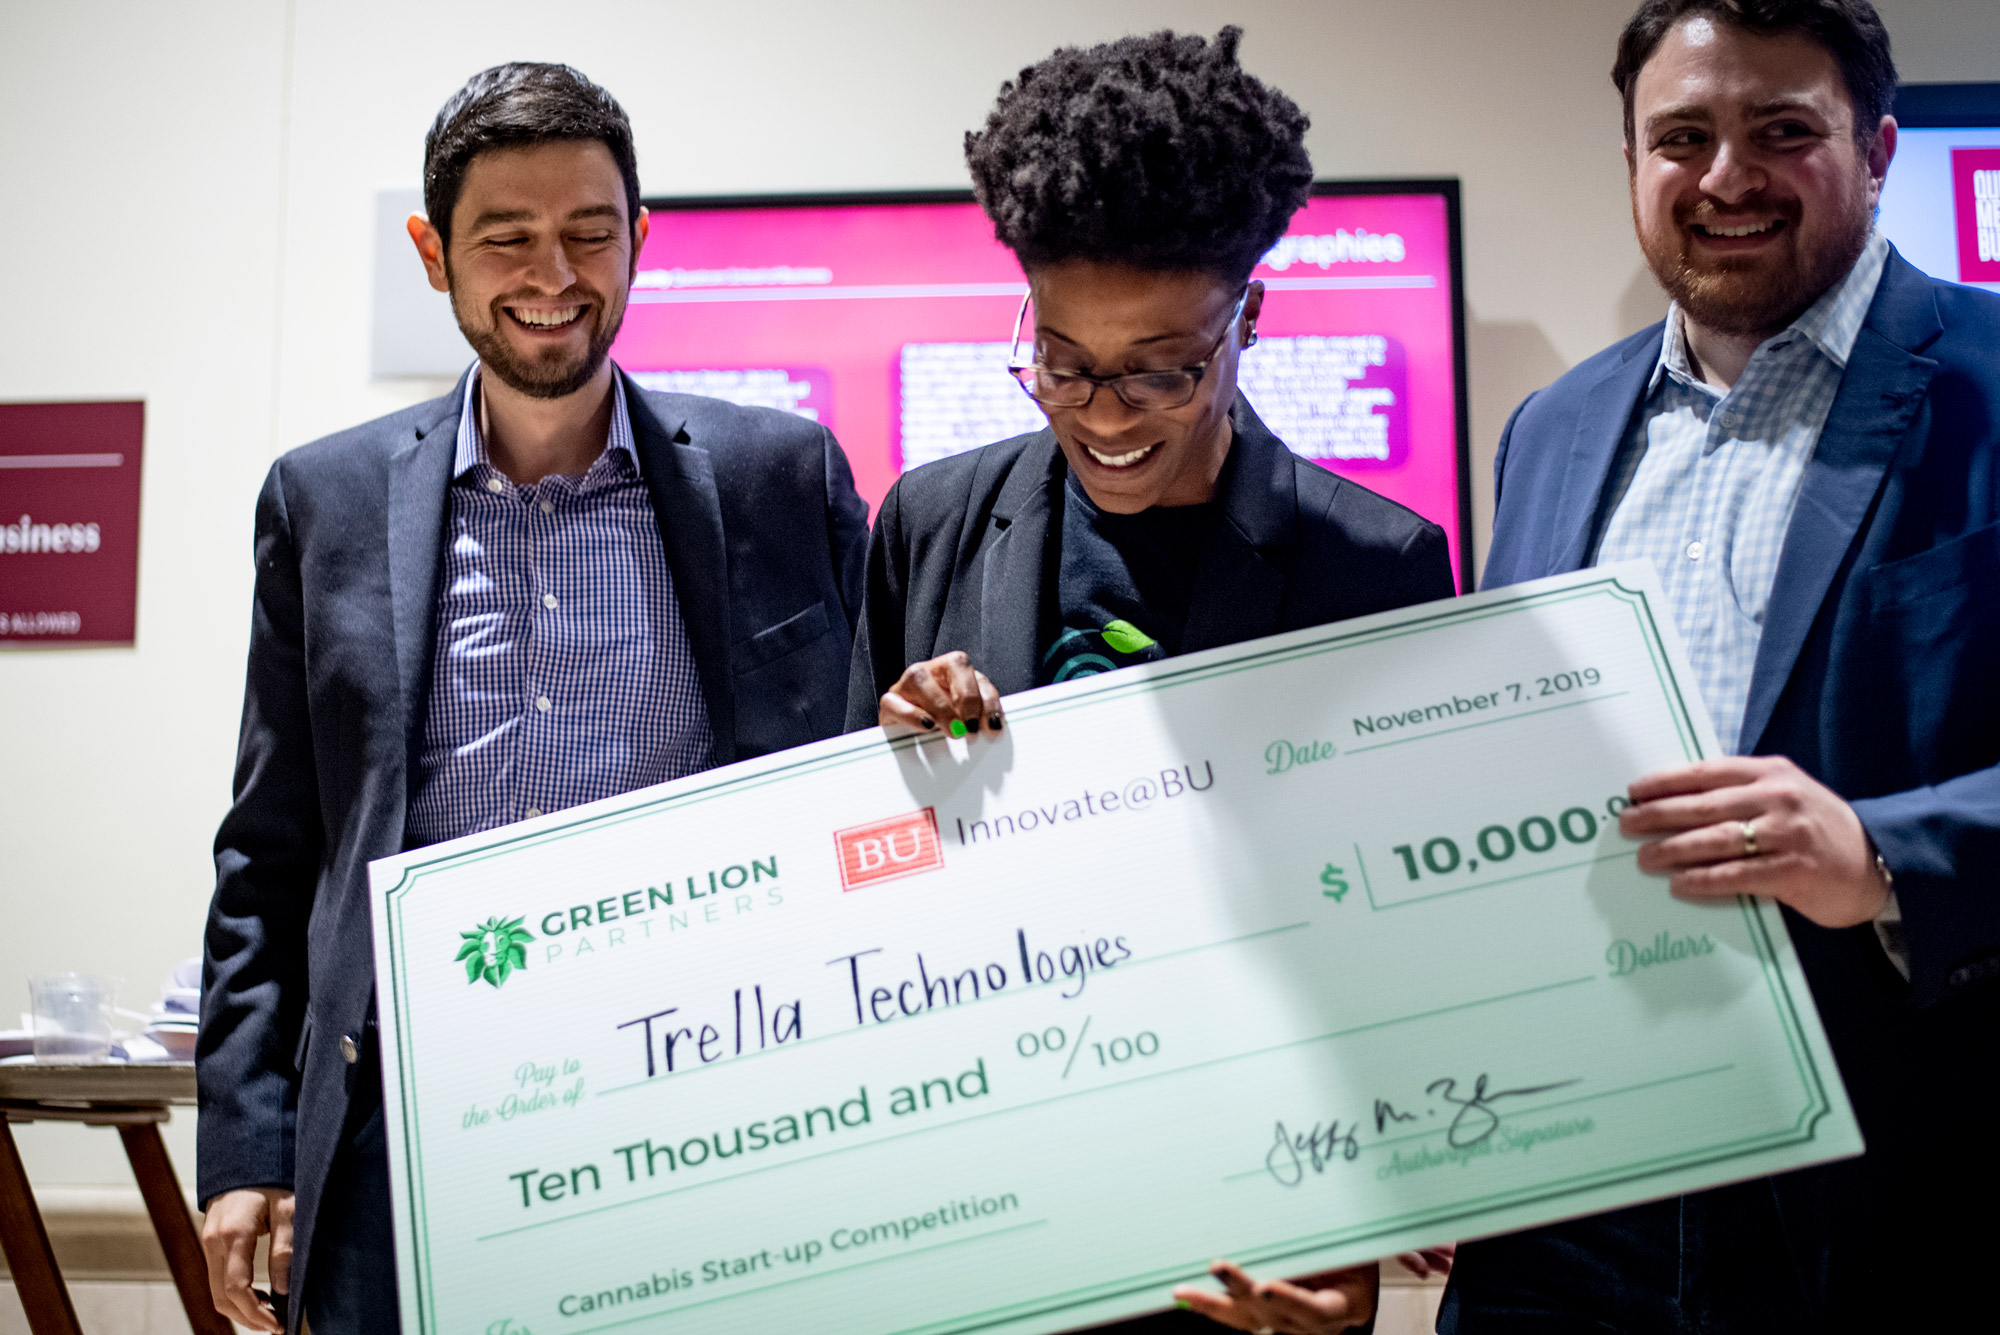 Angela Pitter (ENG'86) receives a check for $10,000 for her pitch for Trella Technologies, a horizontal plant-training system, during the 3rd Annual Cannabis Startup Competition